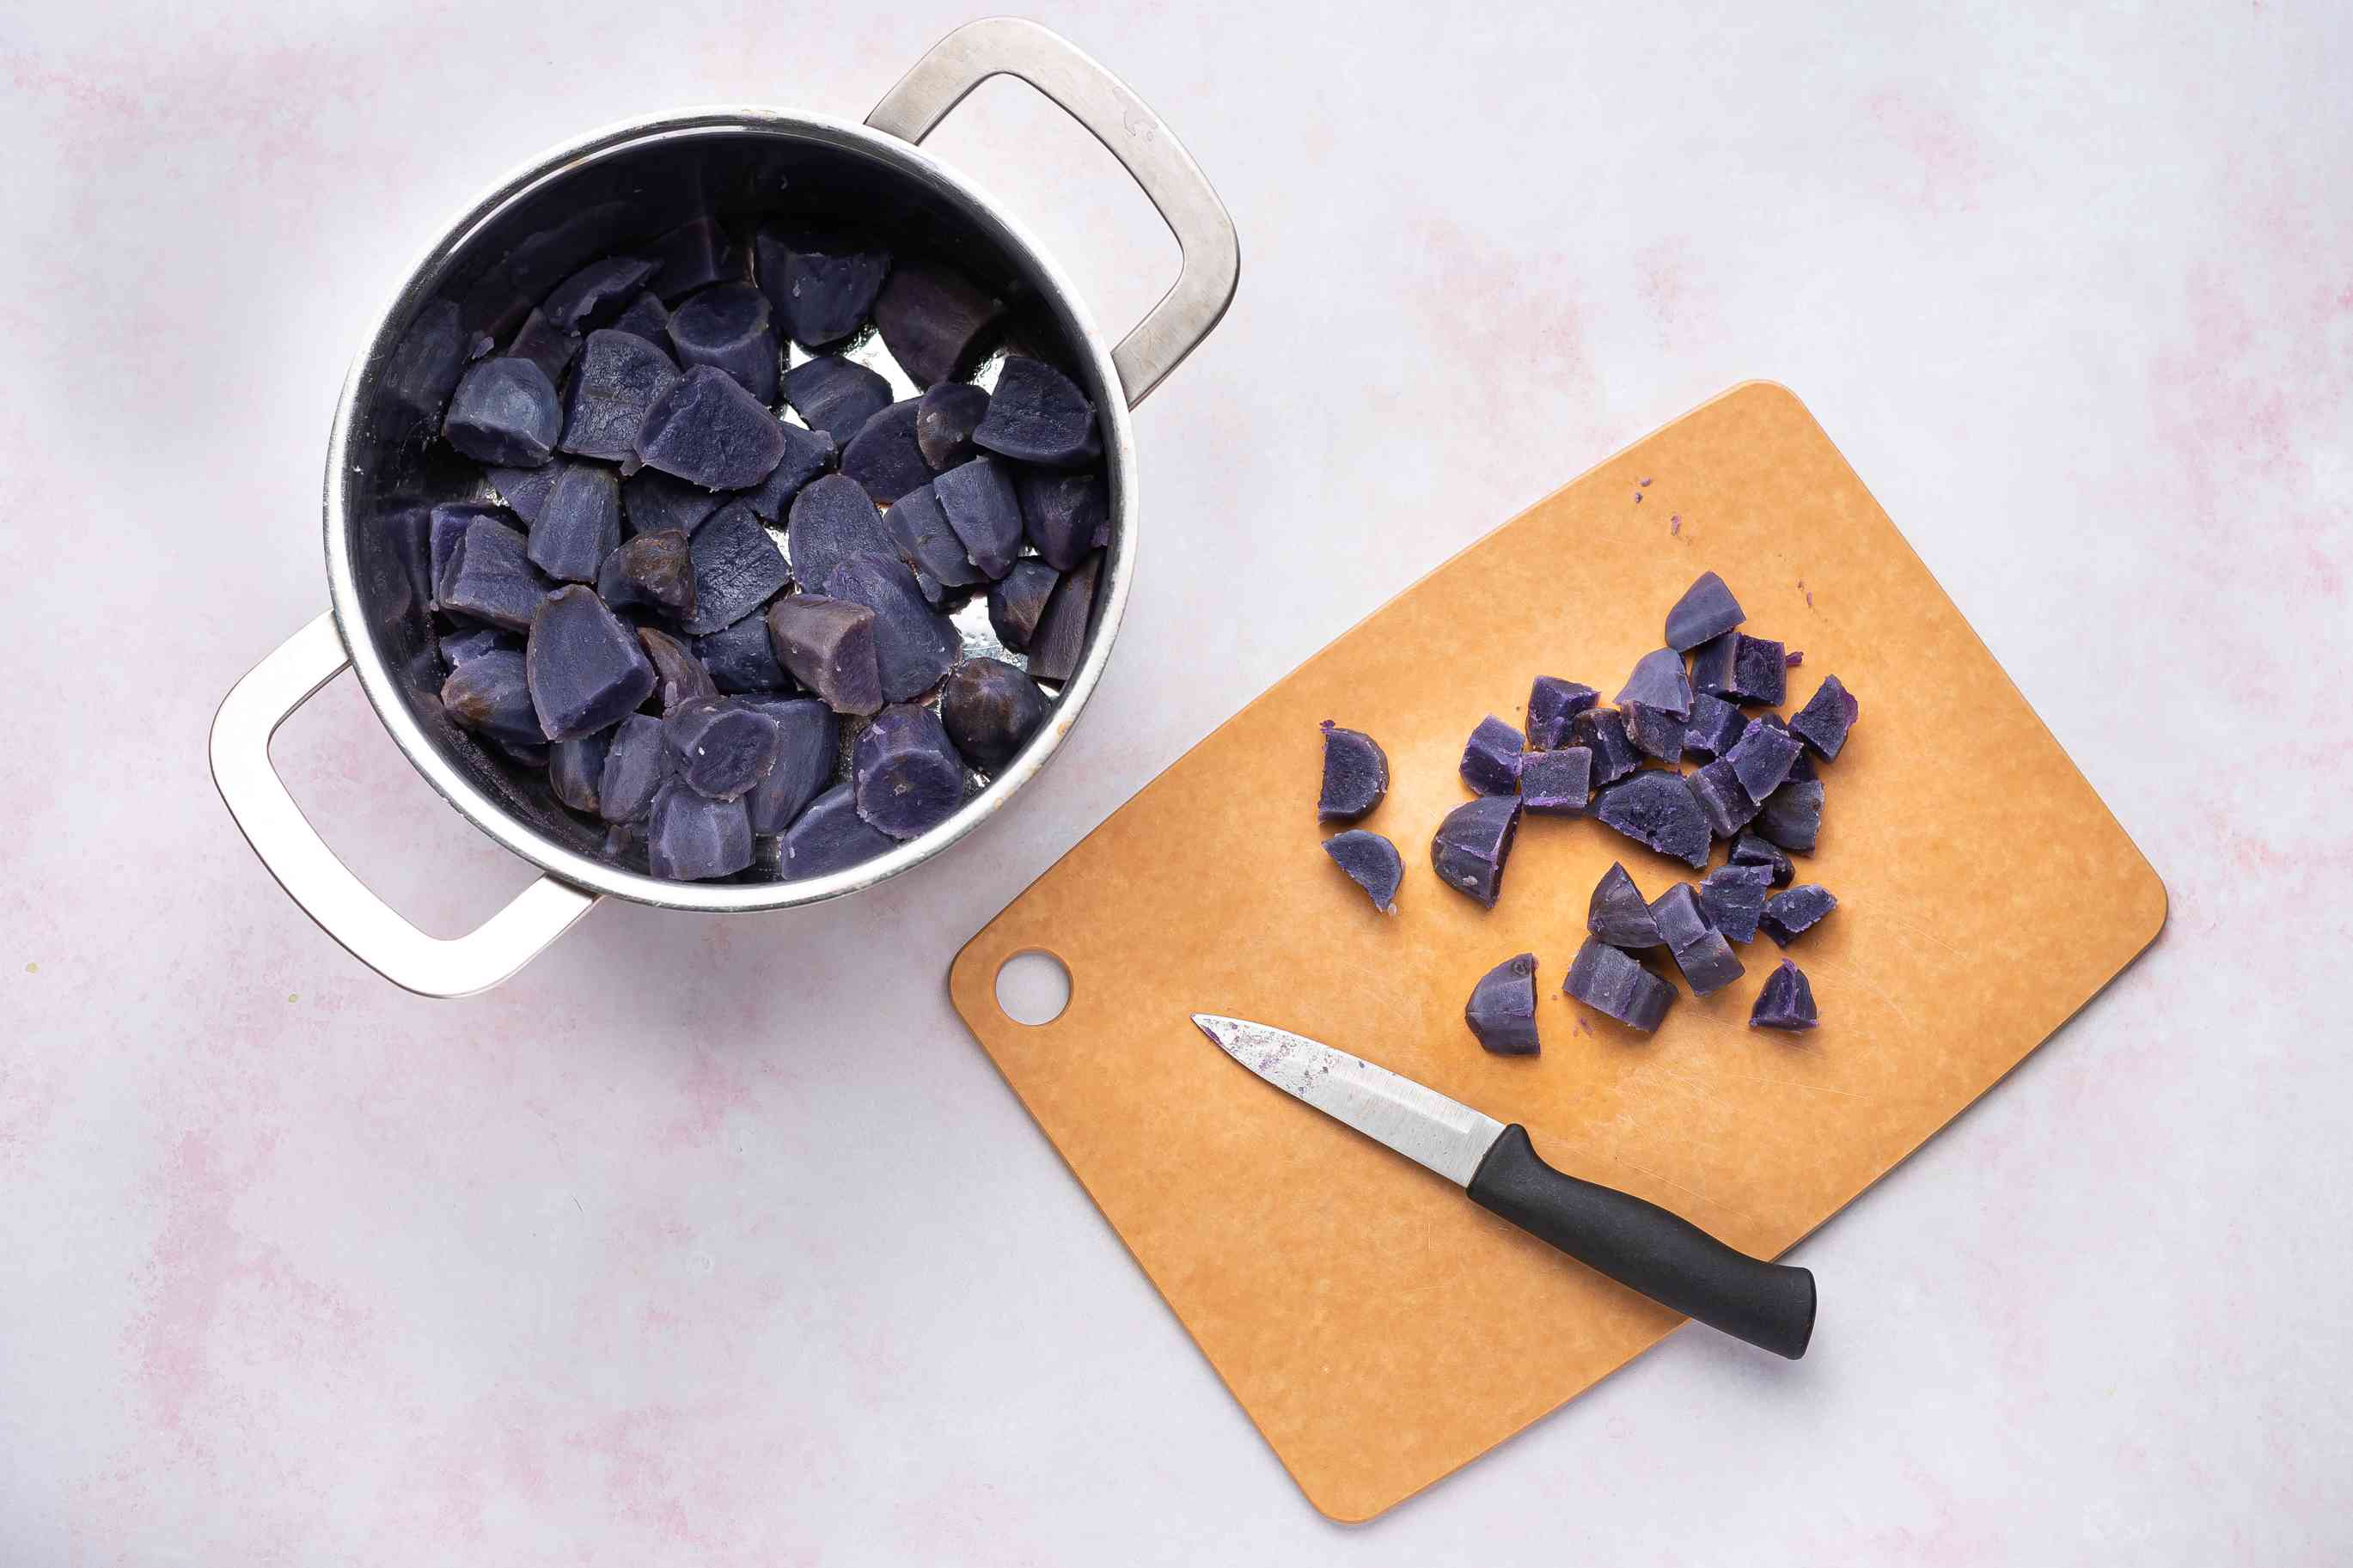 purple potatoes cut into small pieces on a cutting board